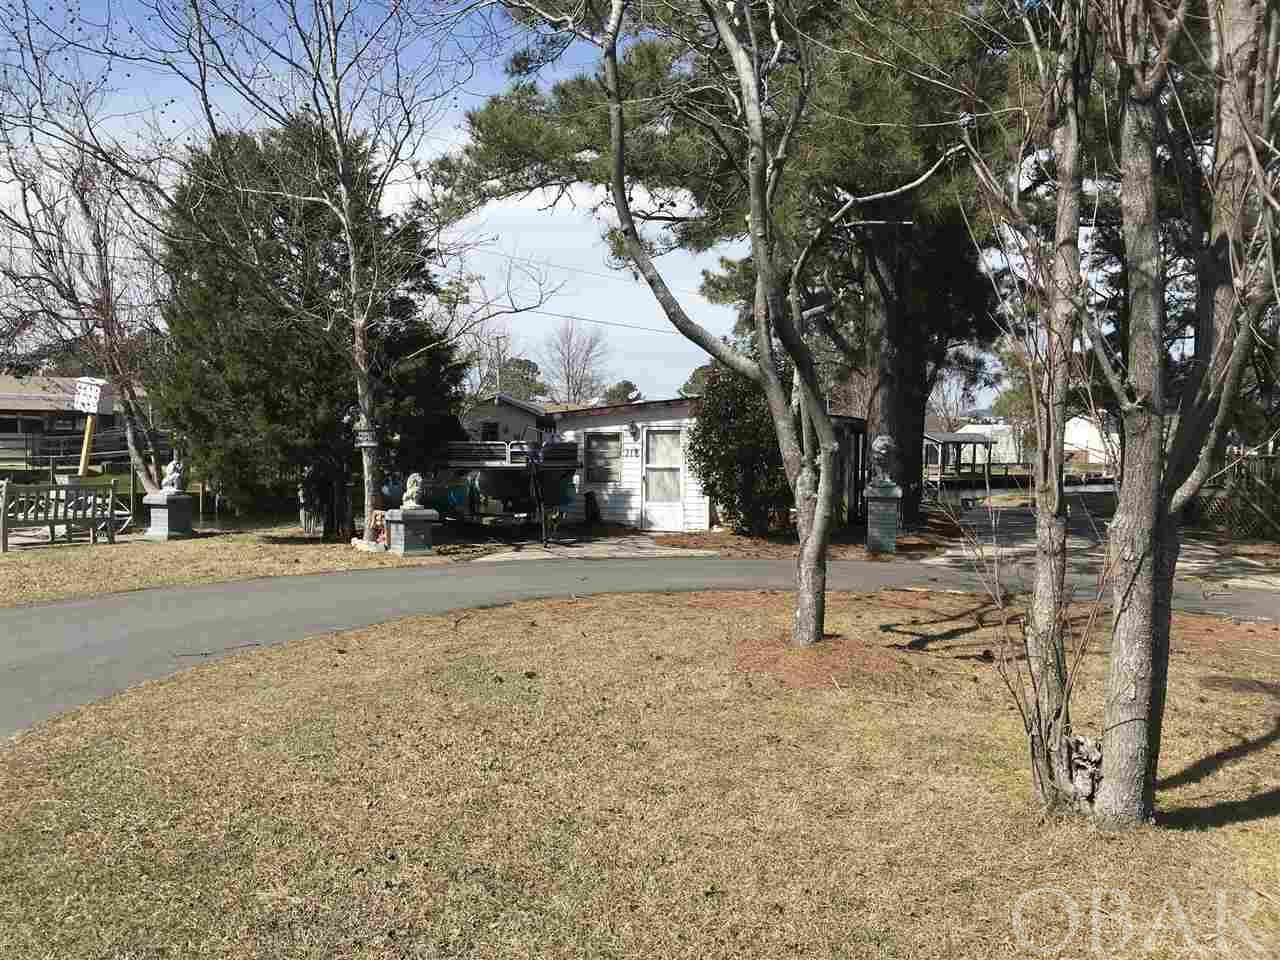 114-122 Reef Lane,Grandy,NC 27939,6 Bedrooms Bedrooms,4 BathroomsBathrooms,Residential,Reef Lane,99704